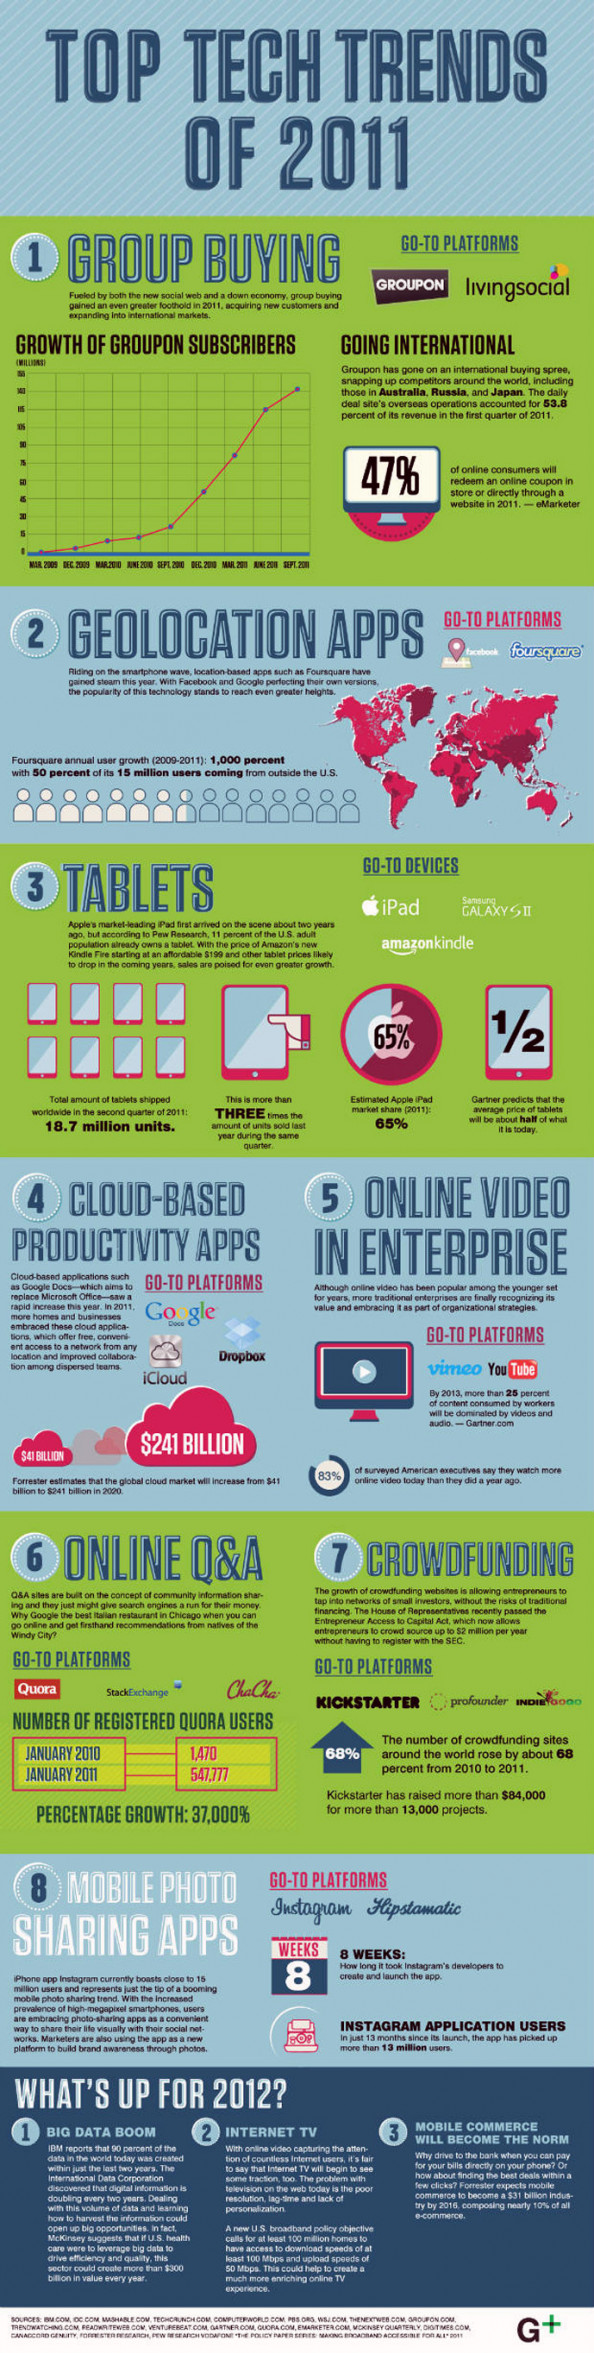 Top Tech Trends in 2011 and 2012 Infographic